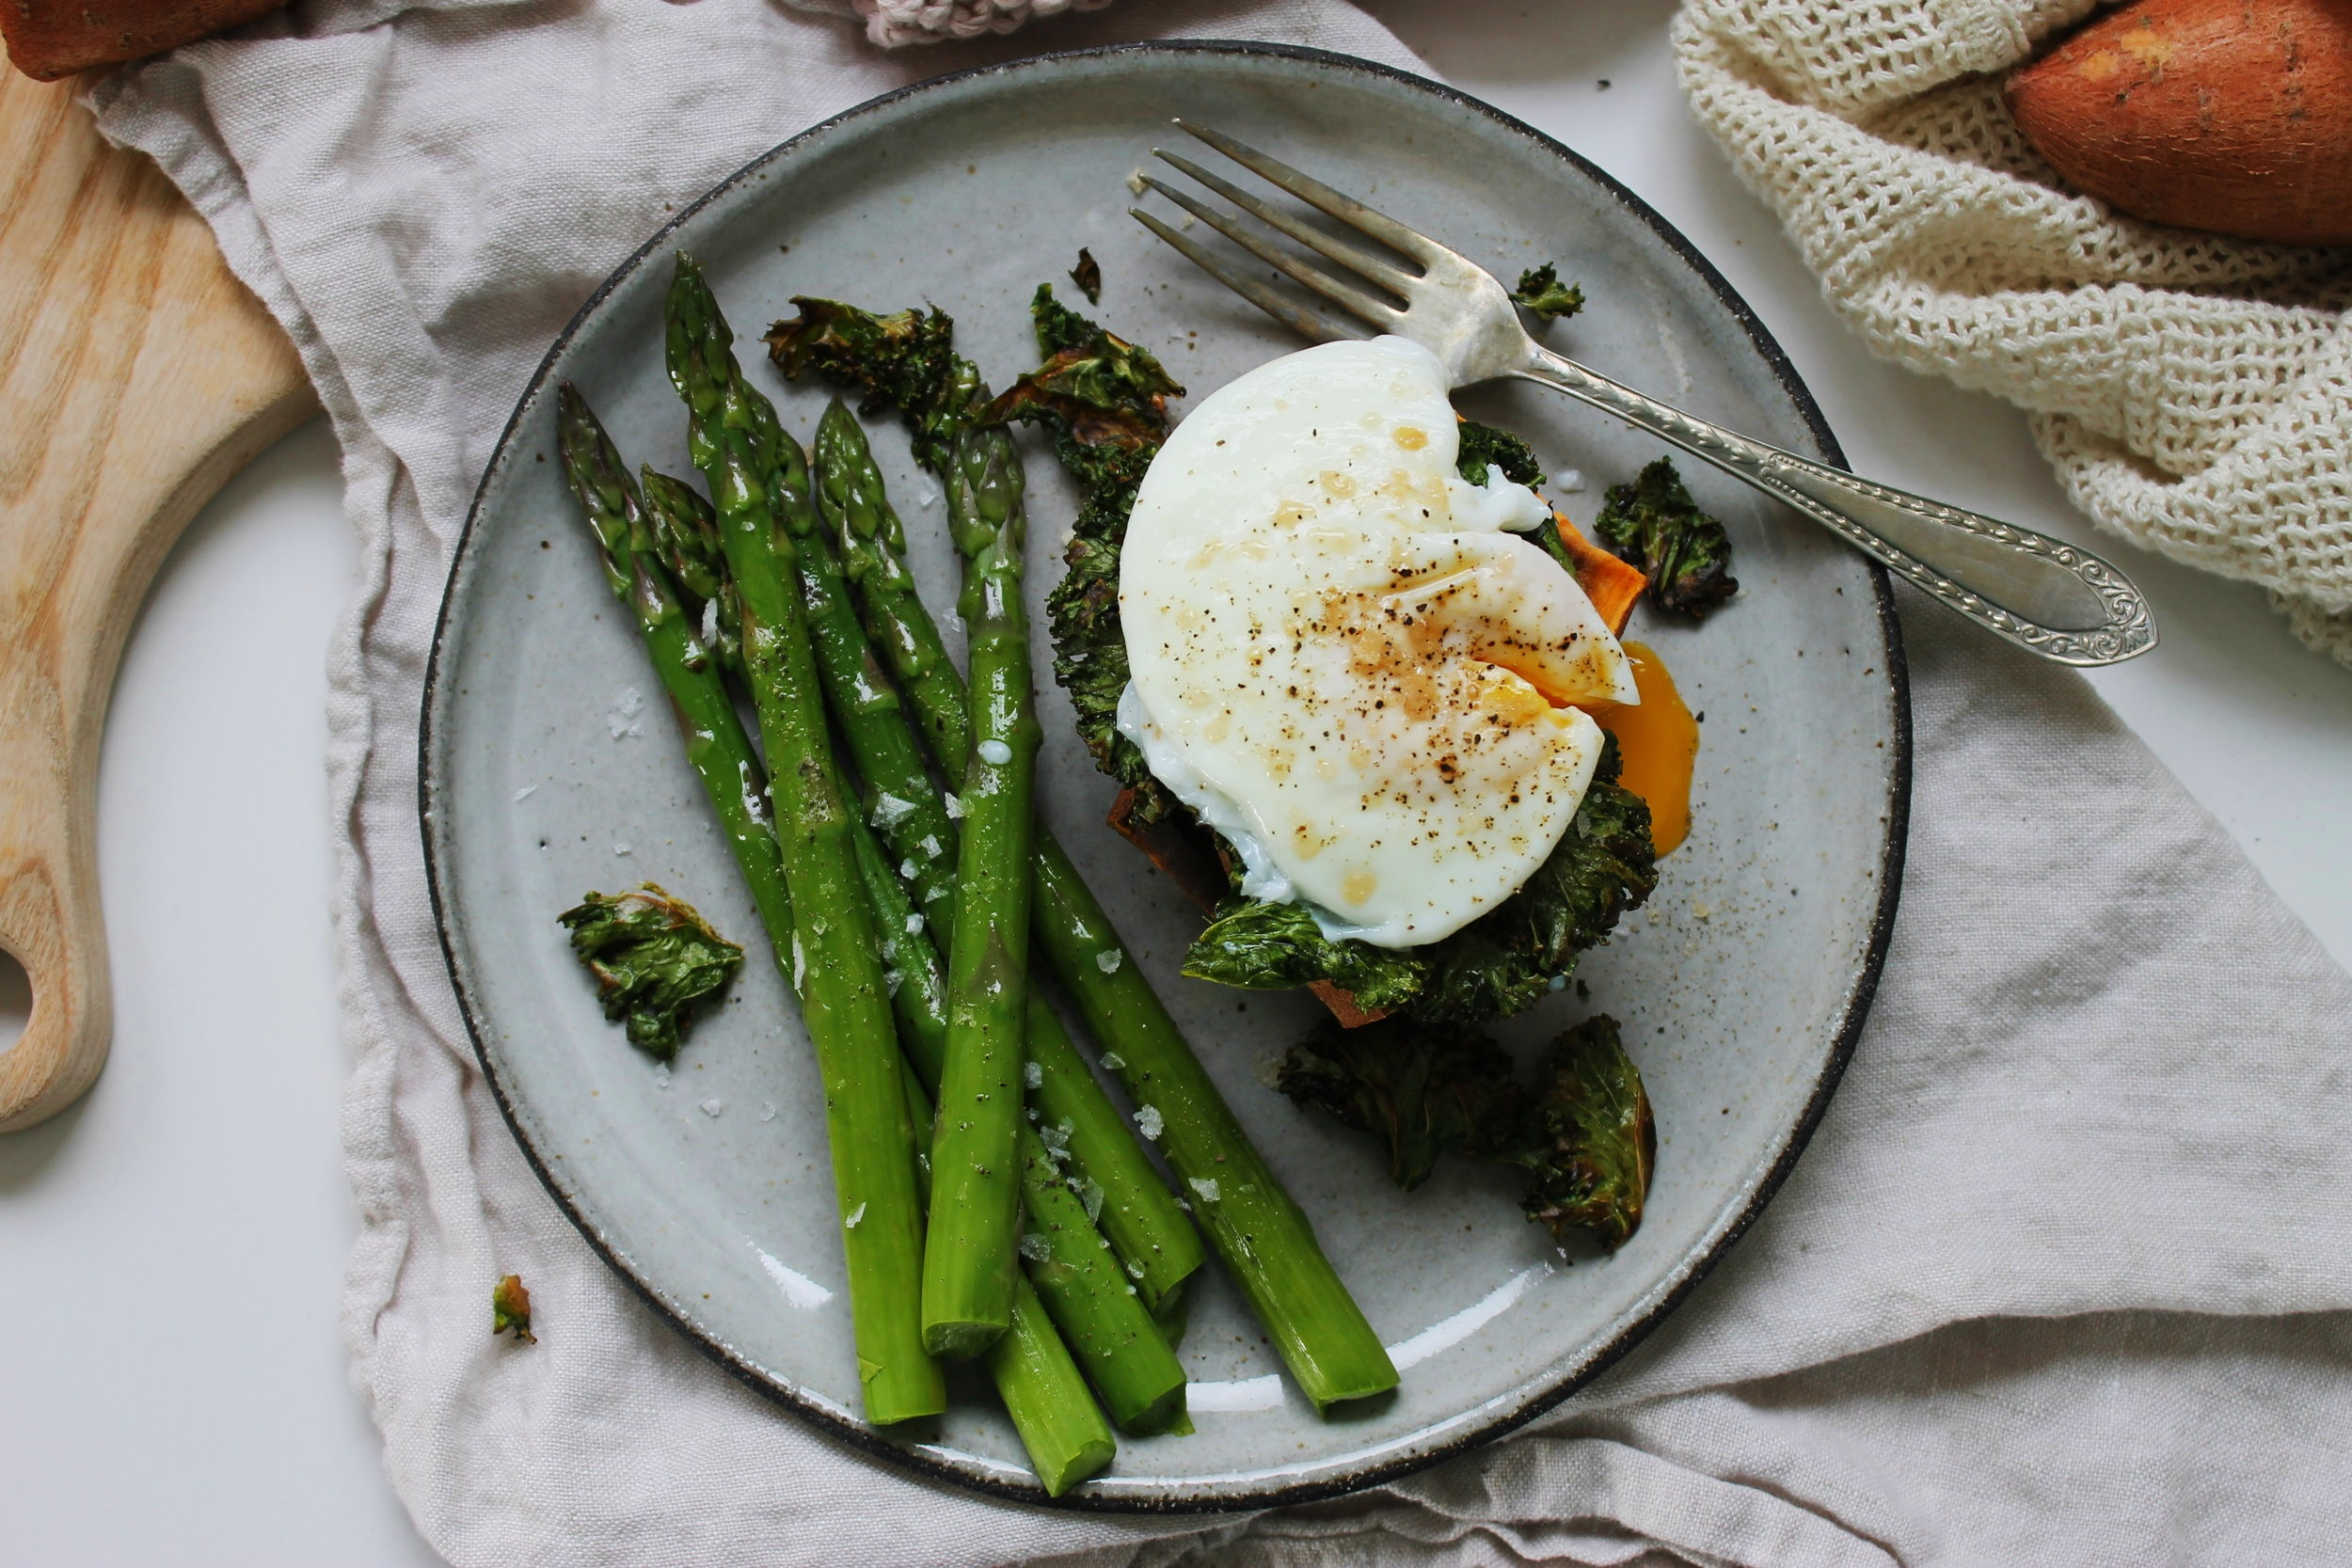 Sweet potato stacks with crispy kale and poached eggs | Beloved Kitchen